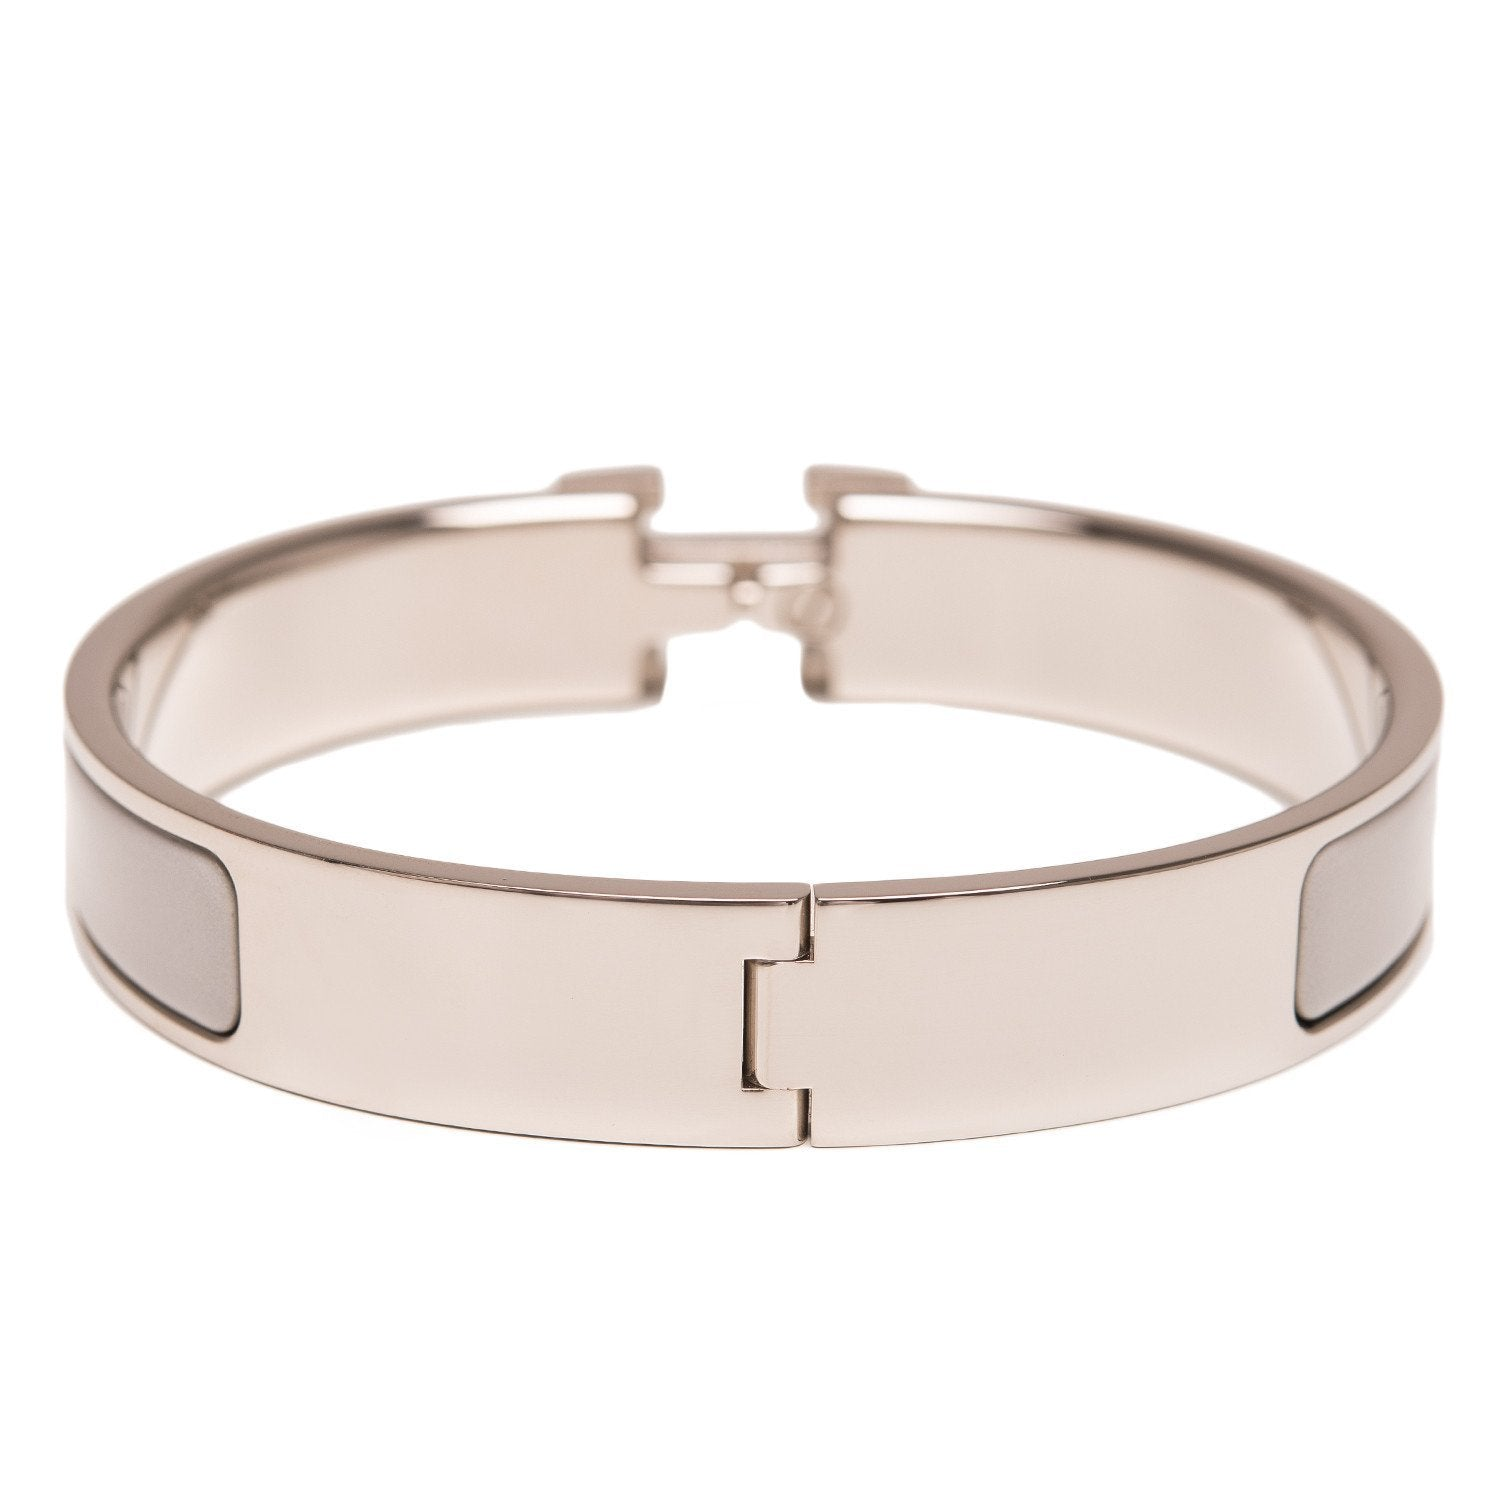 Hermes Grey On White Enamel H Clic Clac Narrow Bracelet Pm Accessories